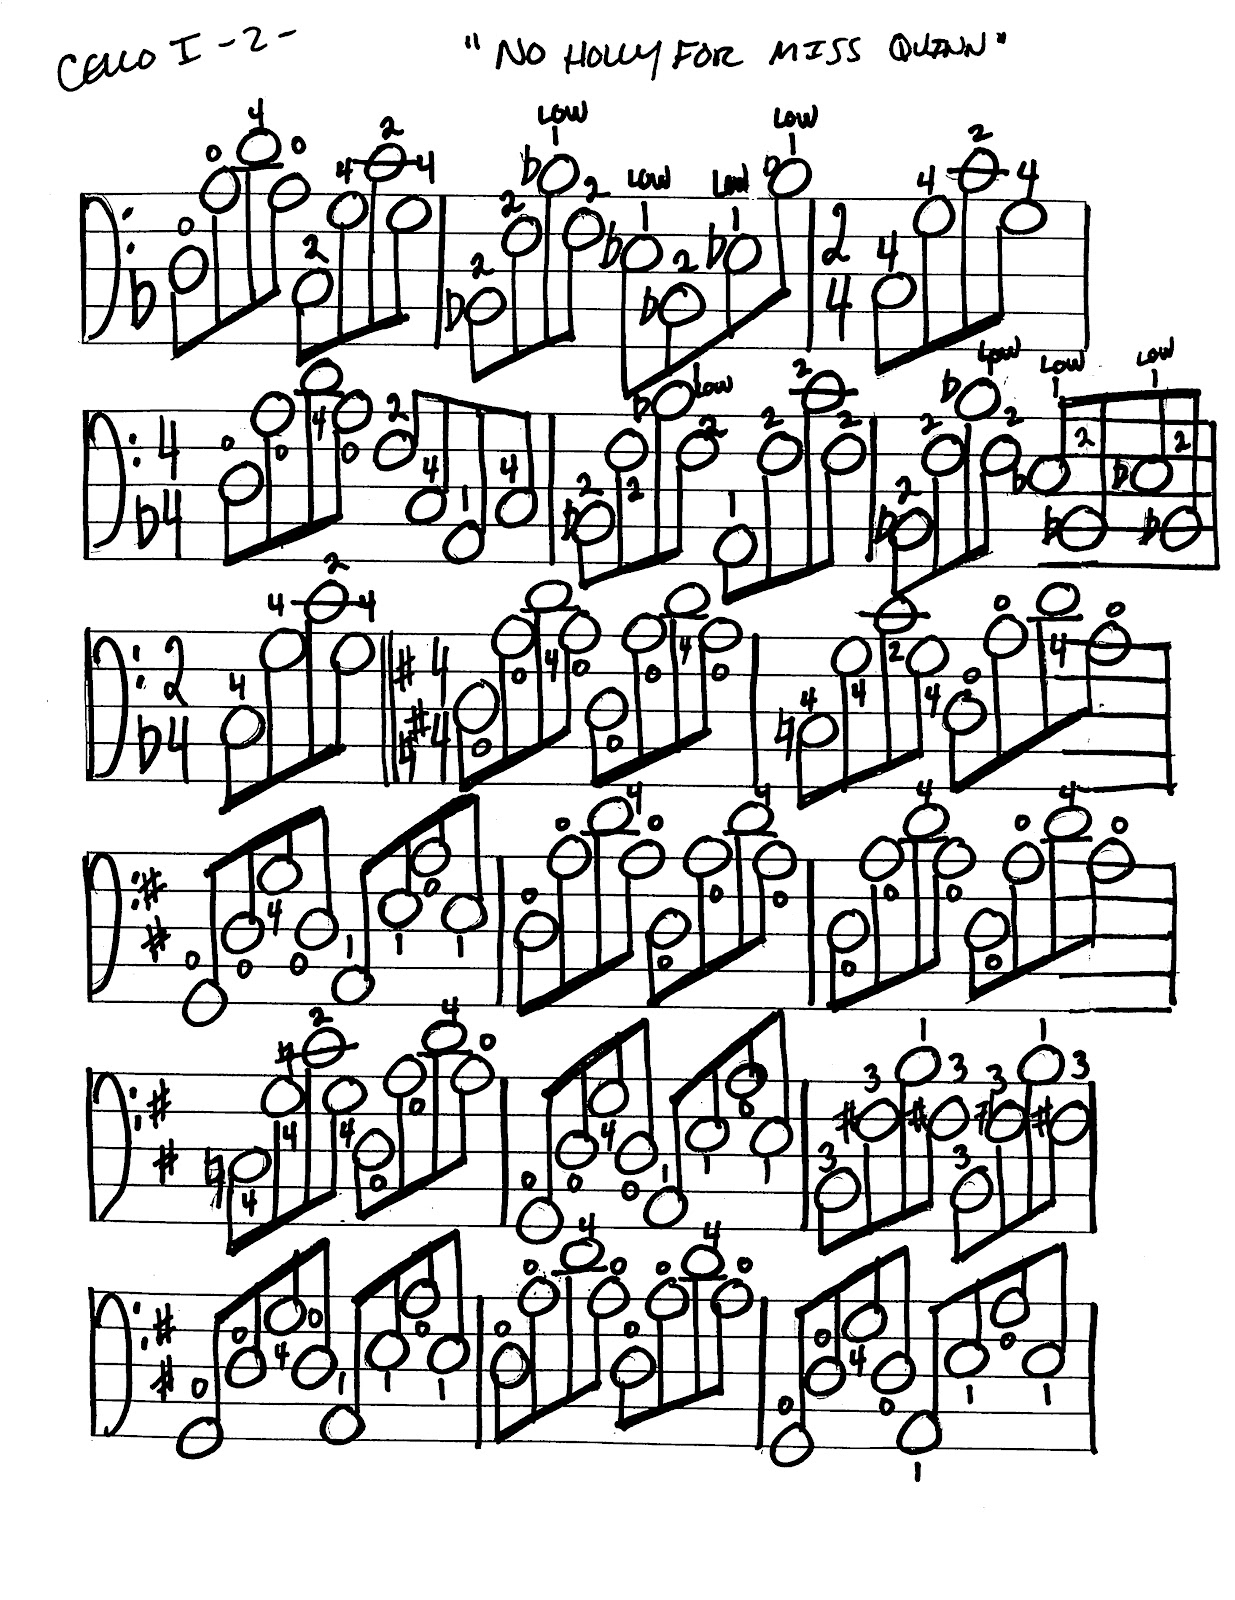 Miss Jacobson S Music No Holly For Miss Quinn Music Worksheets